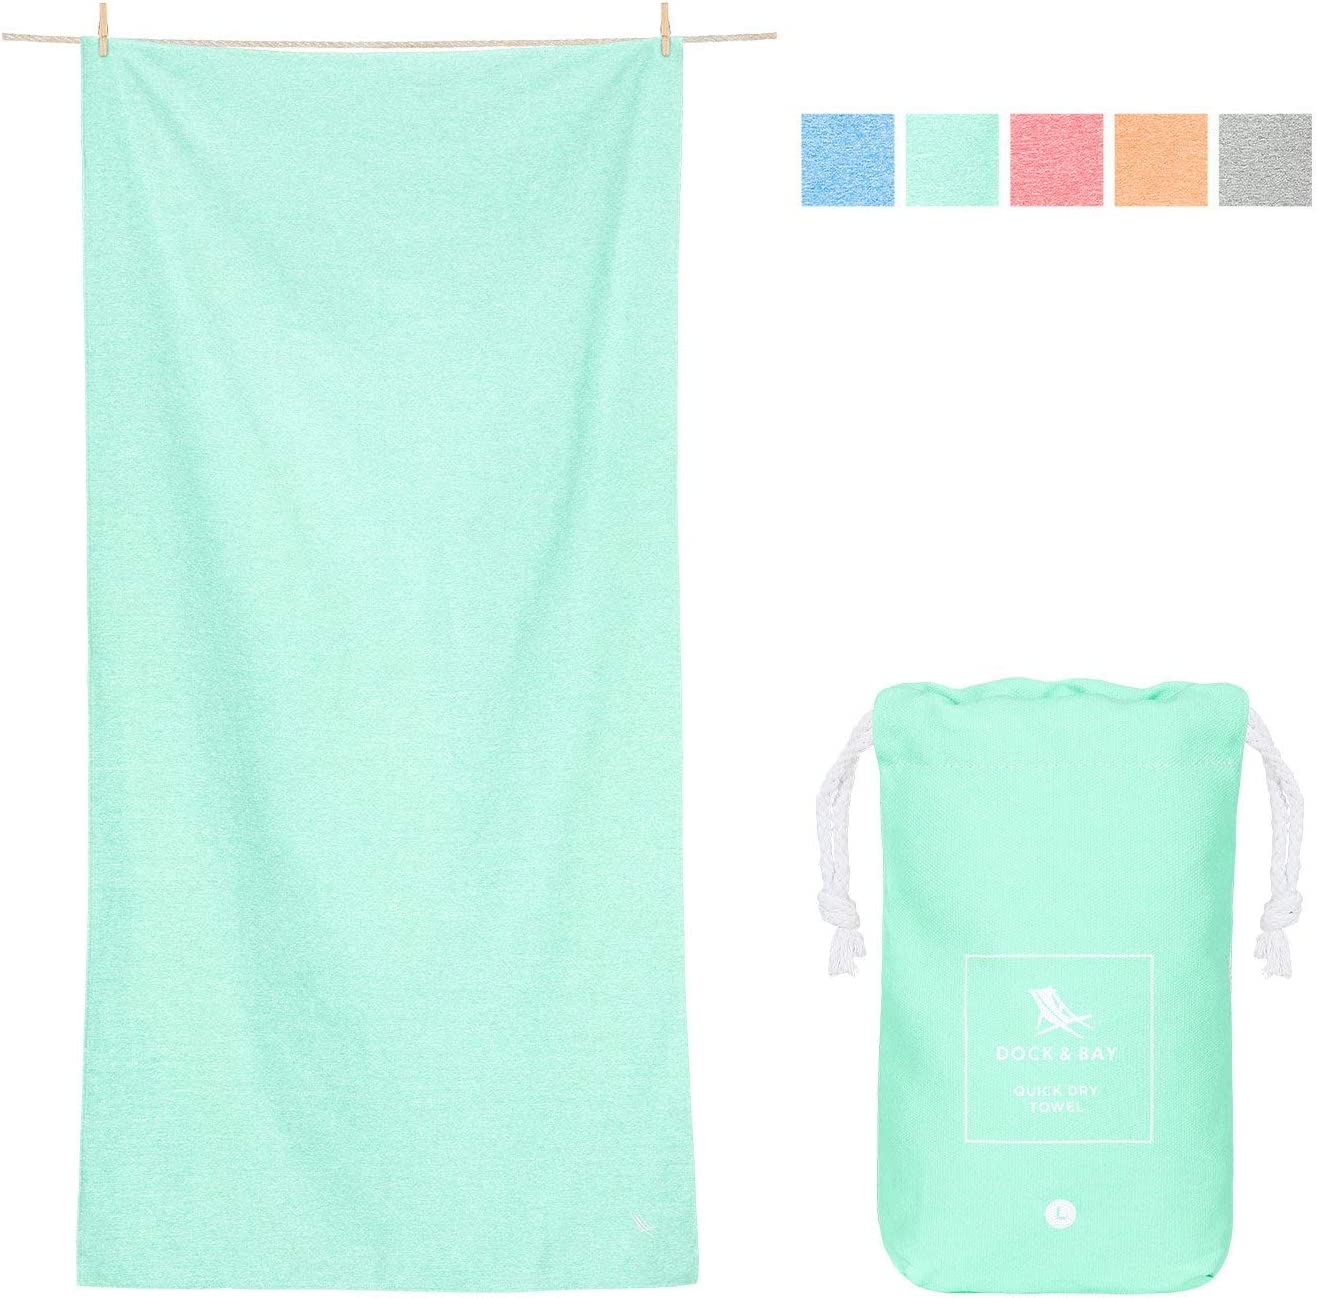 Dock & Bay Compact Sports Towel for Swim - Rainforest Green, 63 x 31 - Fitness, Shower & Travel - Fast Dry, Compact, Lightweight